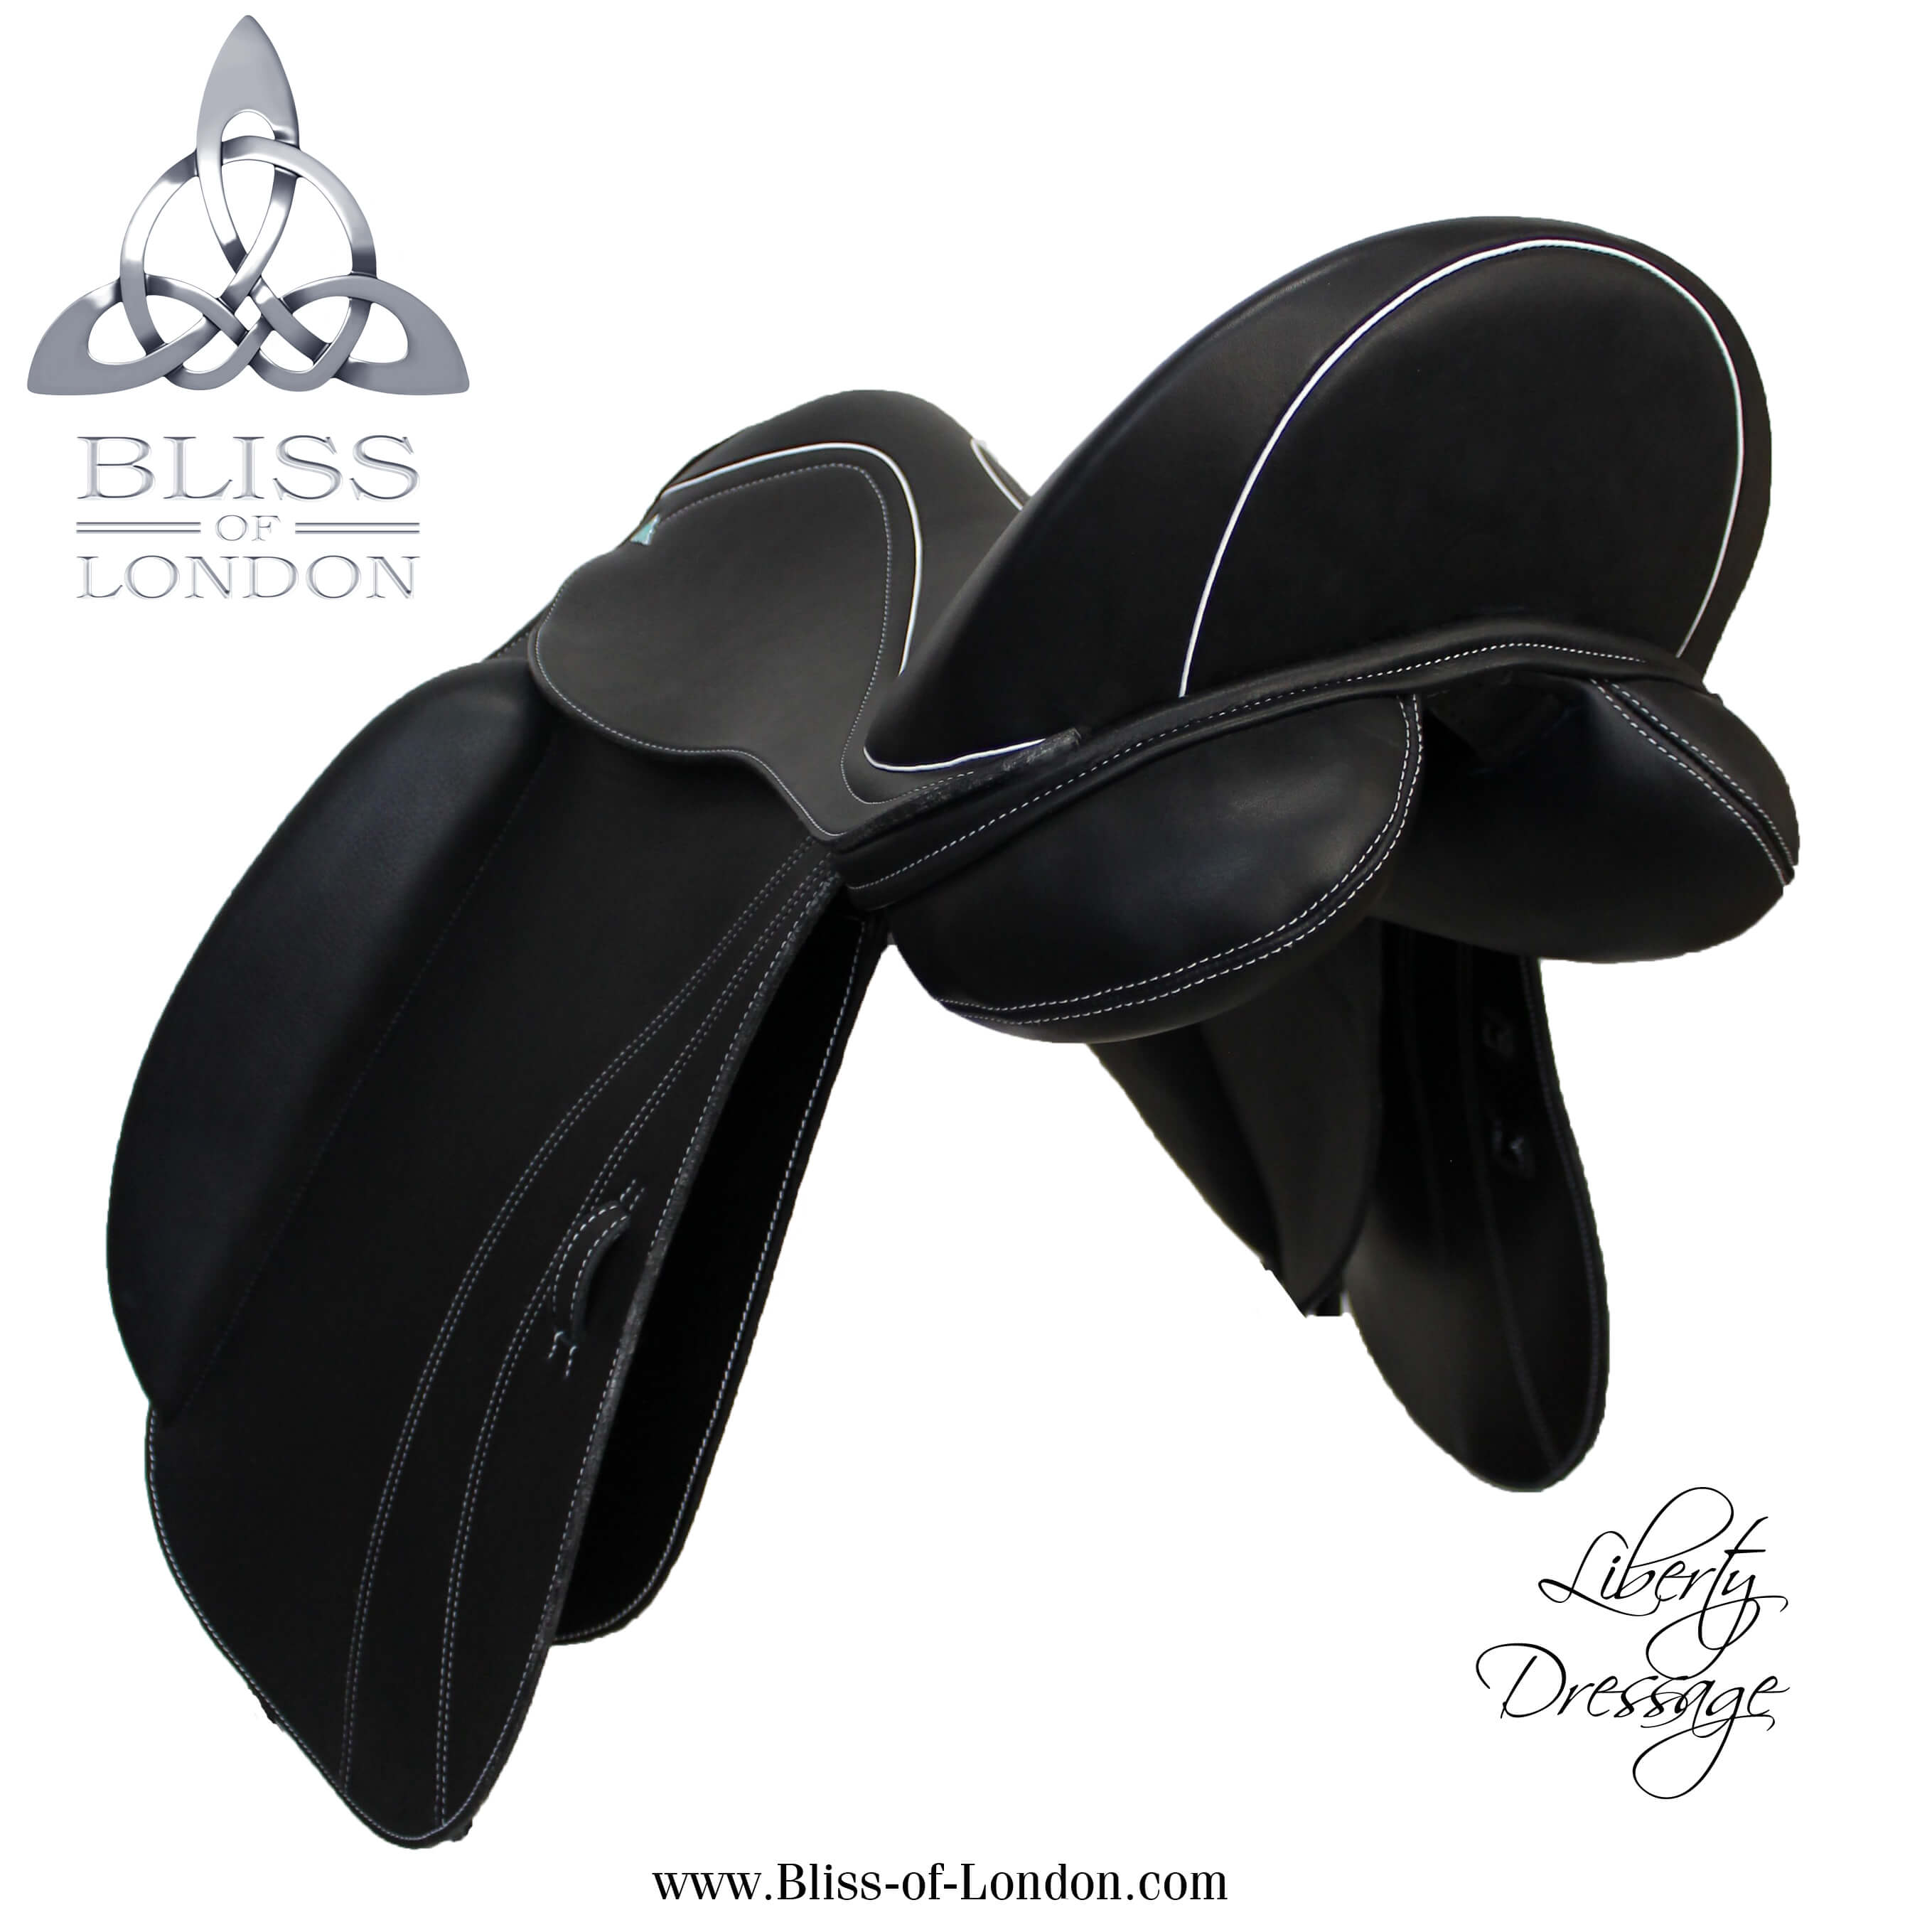 1A Product page 1 - Liberty Dressage B&W 34 side